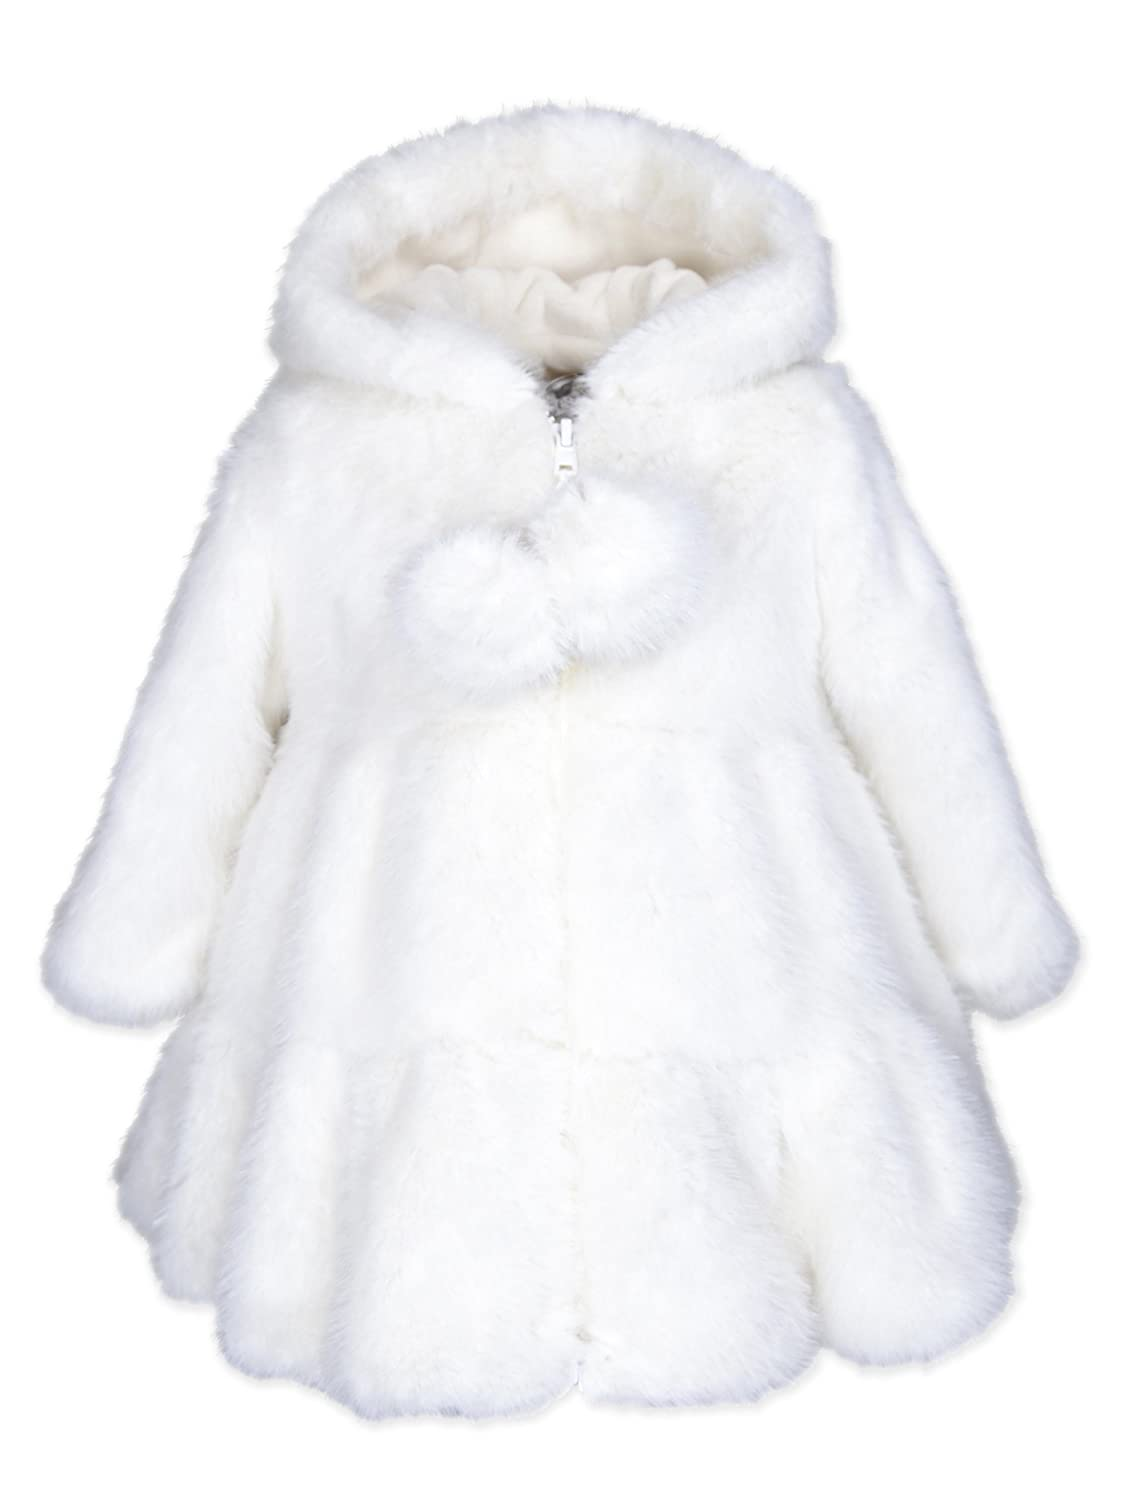 68544a5ed Amazon.com  Widgeon Baby Girls Hooded Faux Fur Swing Coat 3674  Clothing